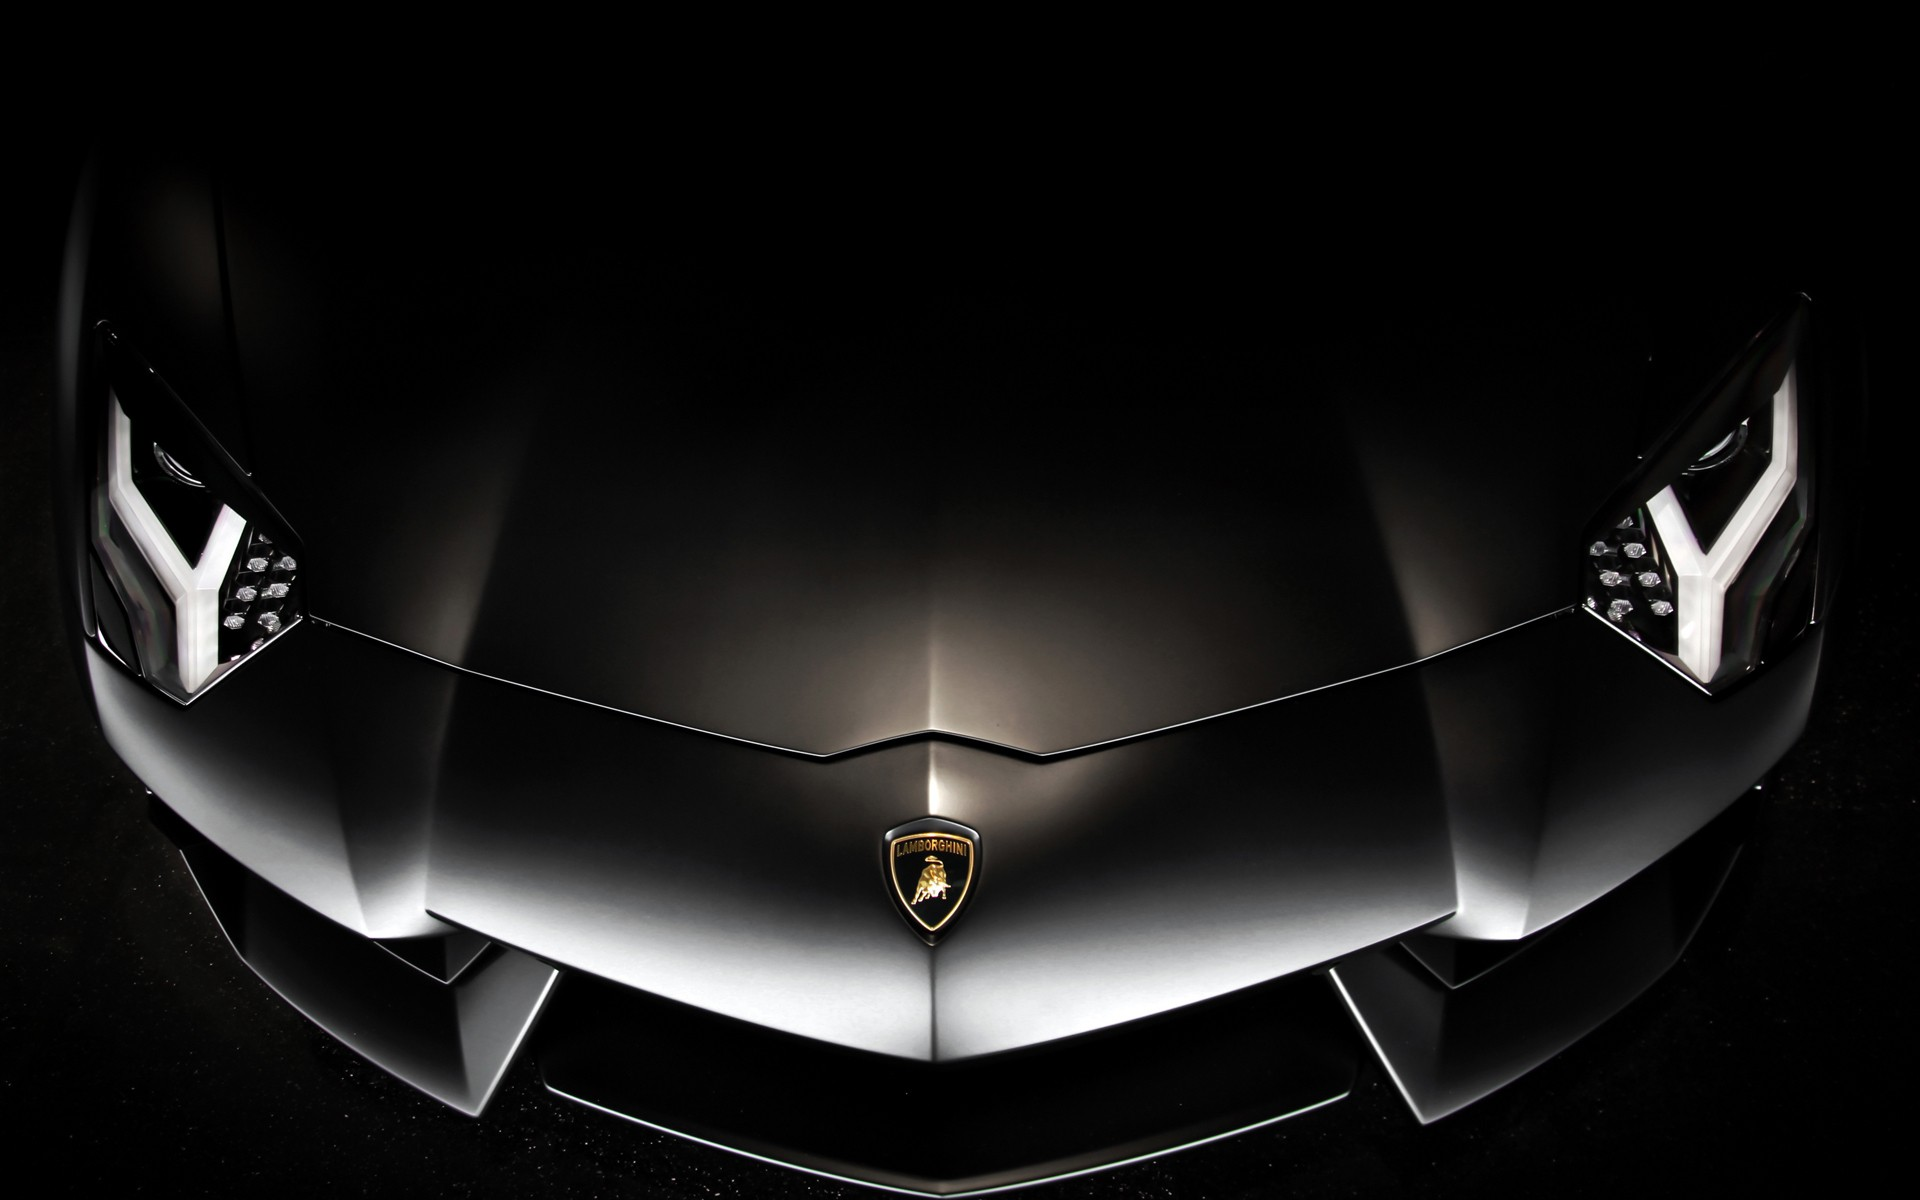 wallpaperstocknetblack lamborghini aventador bonnet wallpapers 33586 1920x1200